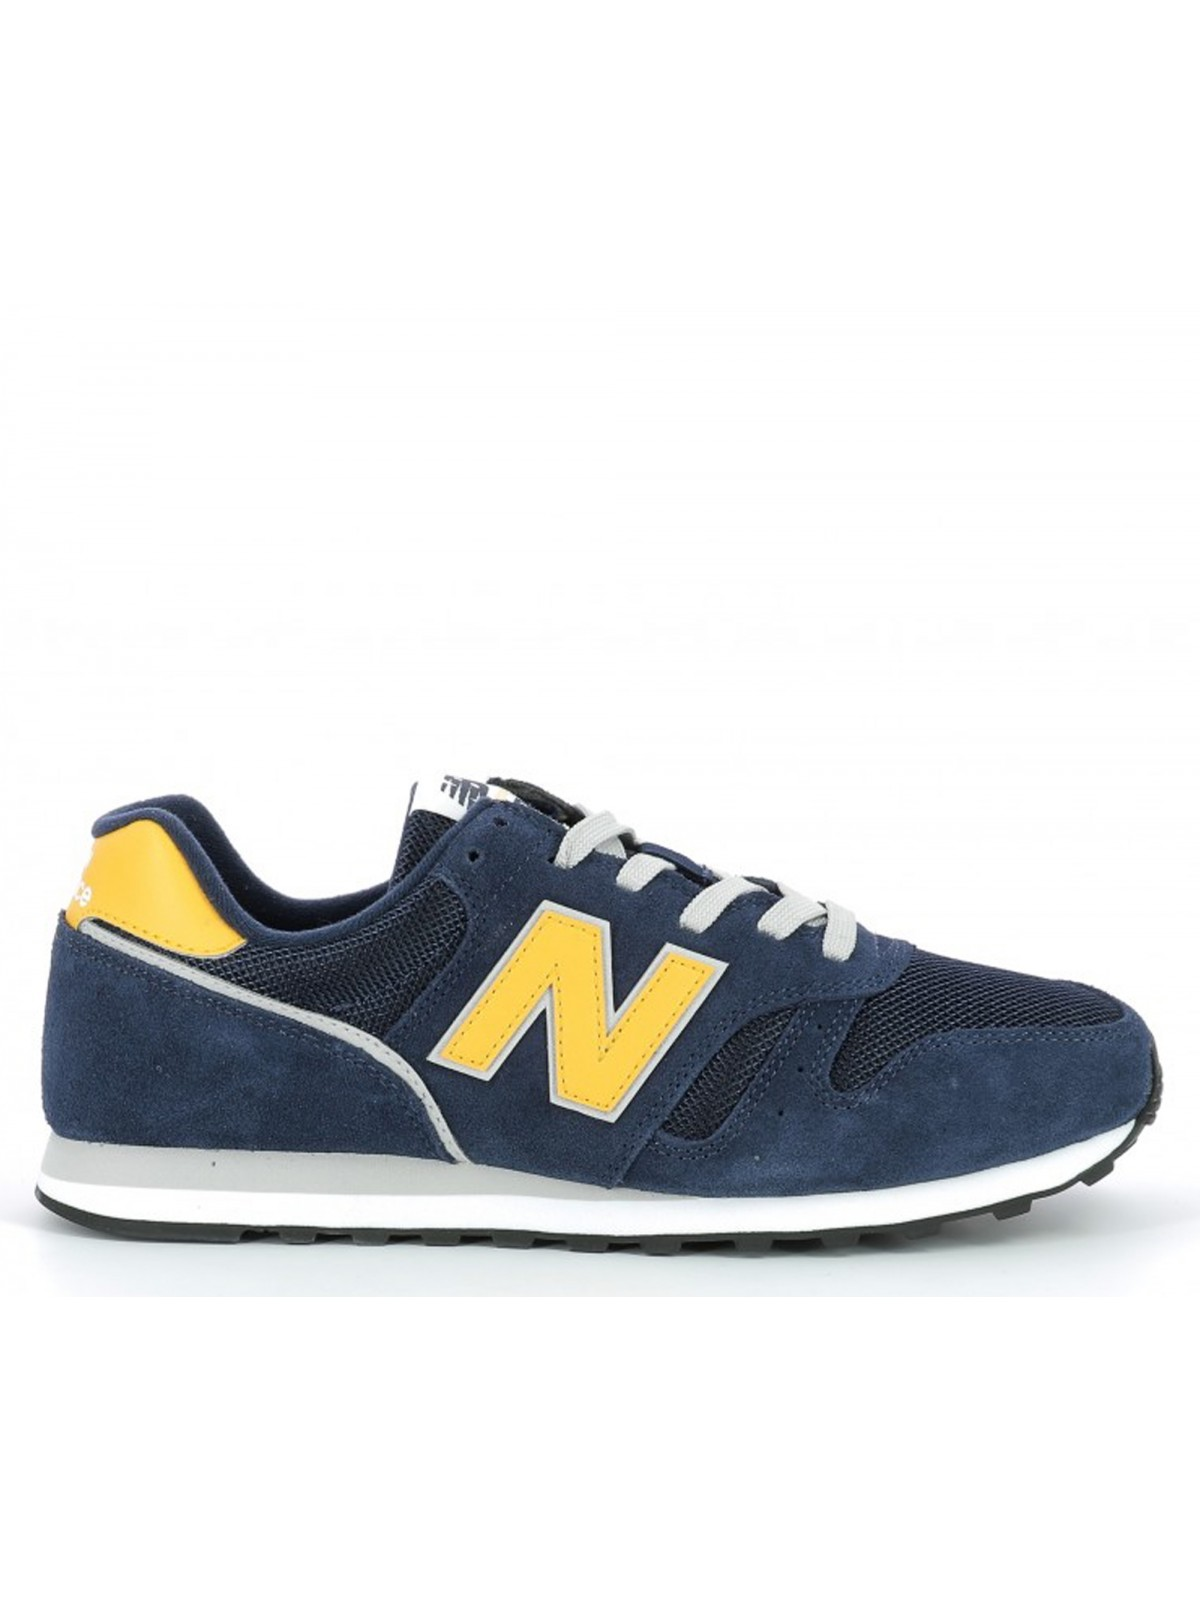 New Balance ML373 navy / jaune